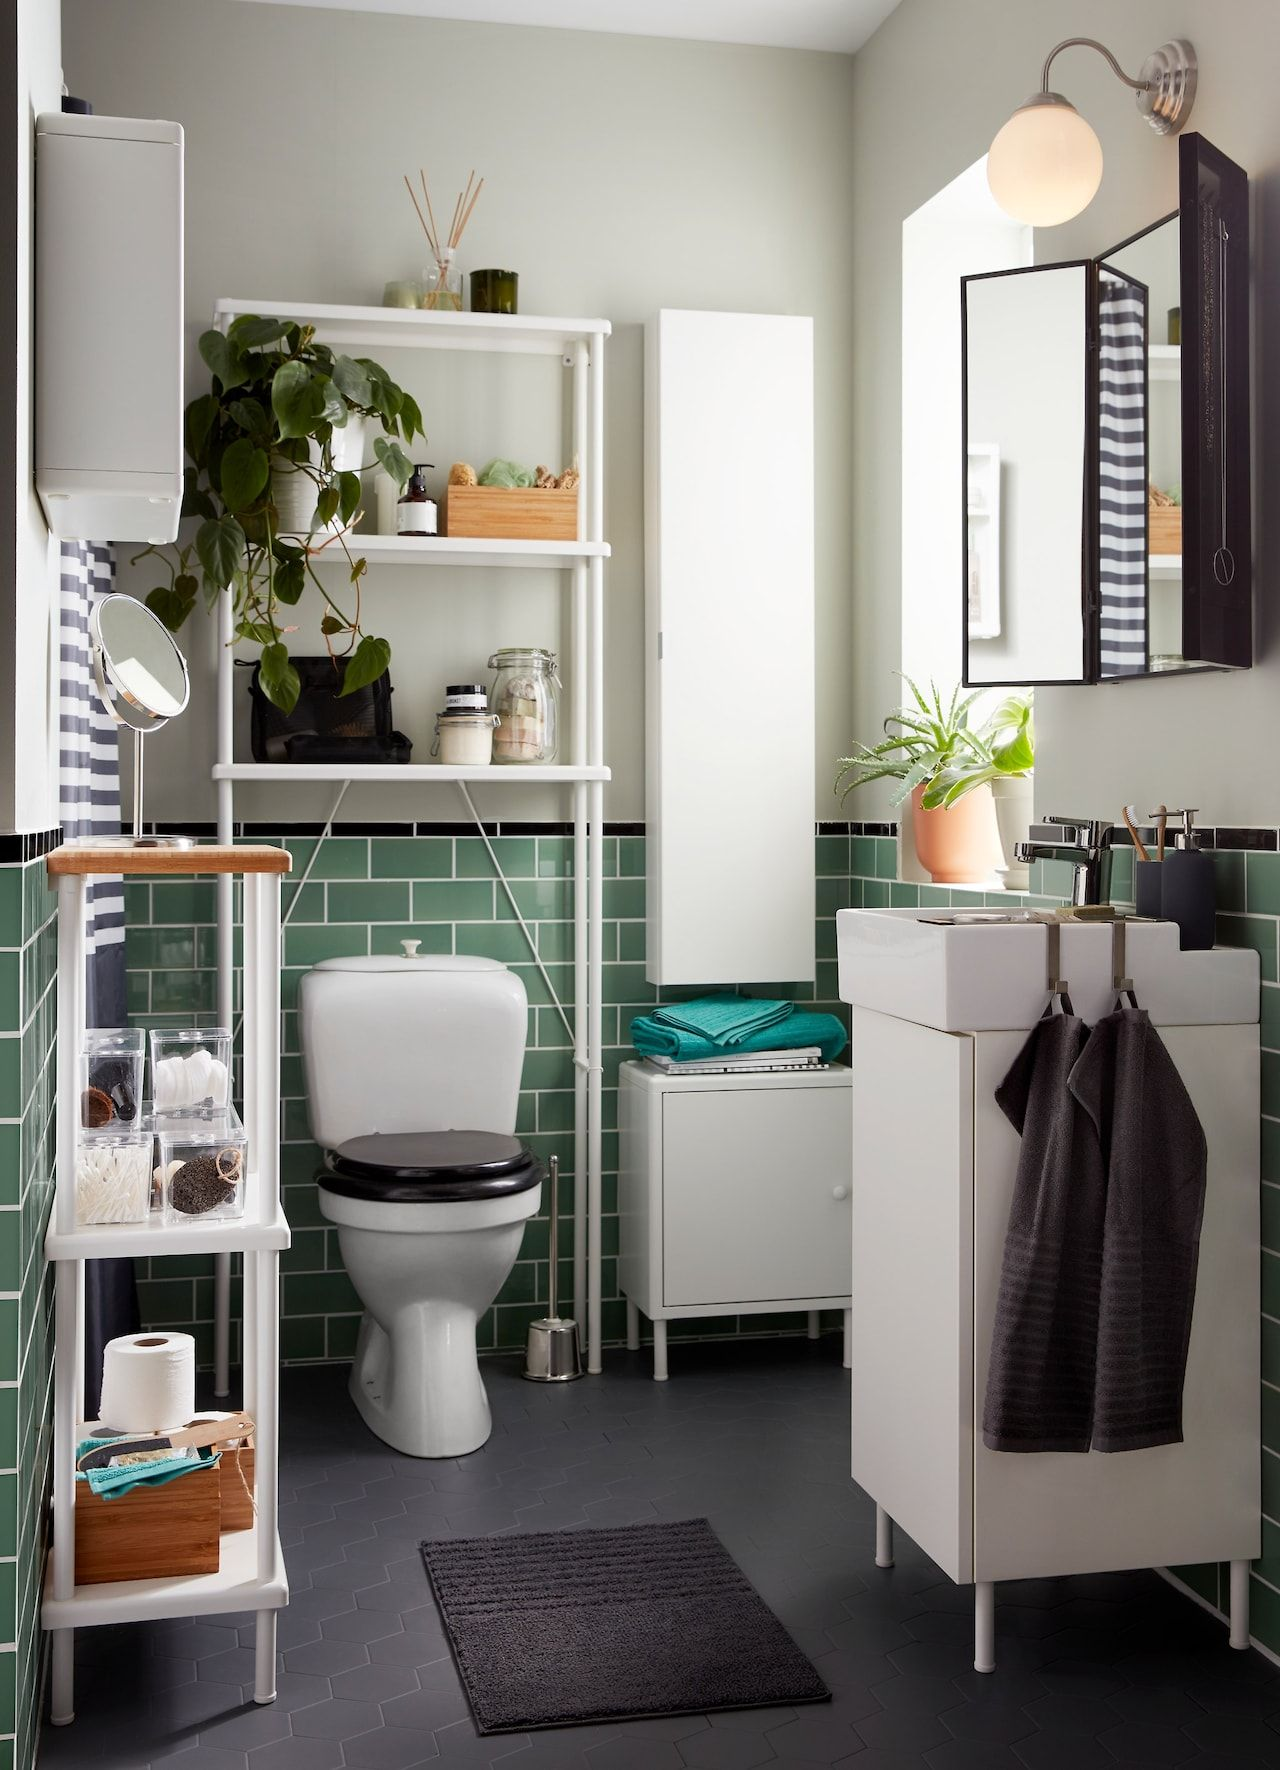 More Space You Didn T Know You Had Small Bathroom Makeover Small Bathroom Remodel Small Master Bathroom